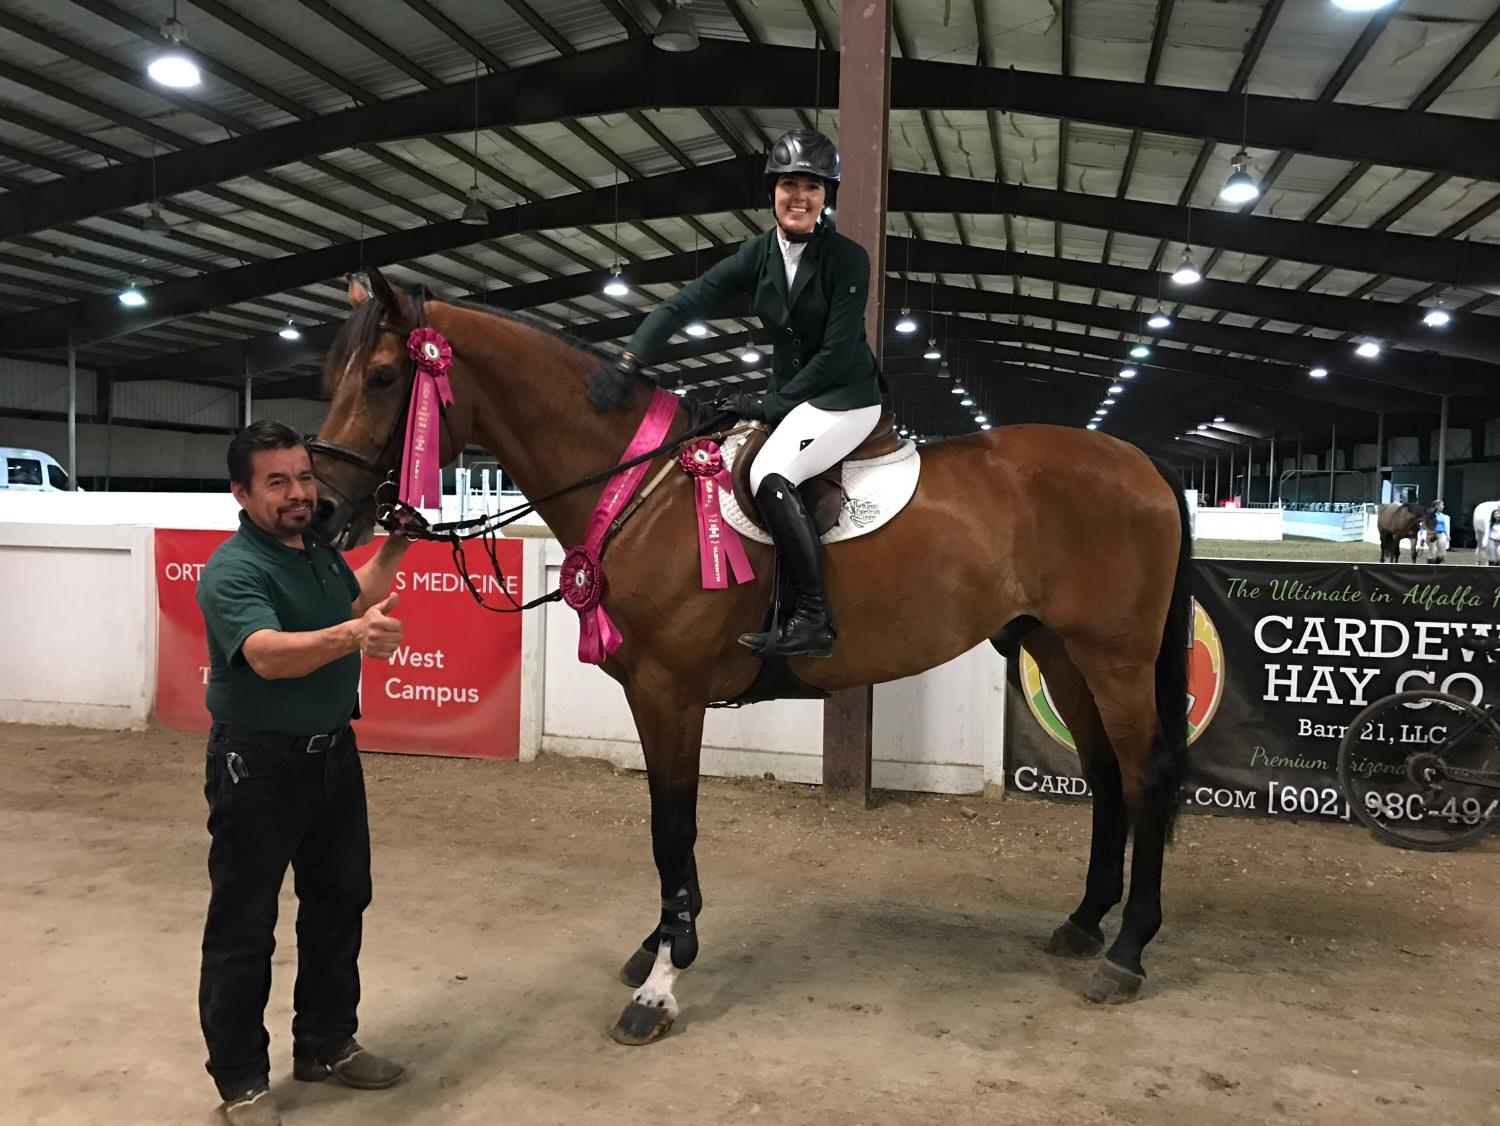 Dressage Amp Para Dressage Horse Riding Lessons In Dallas